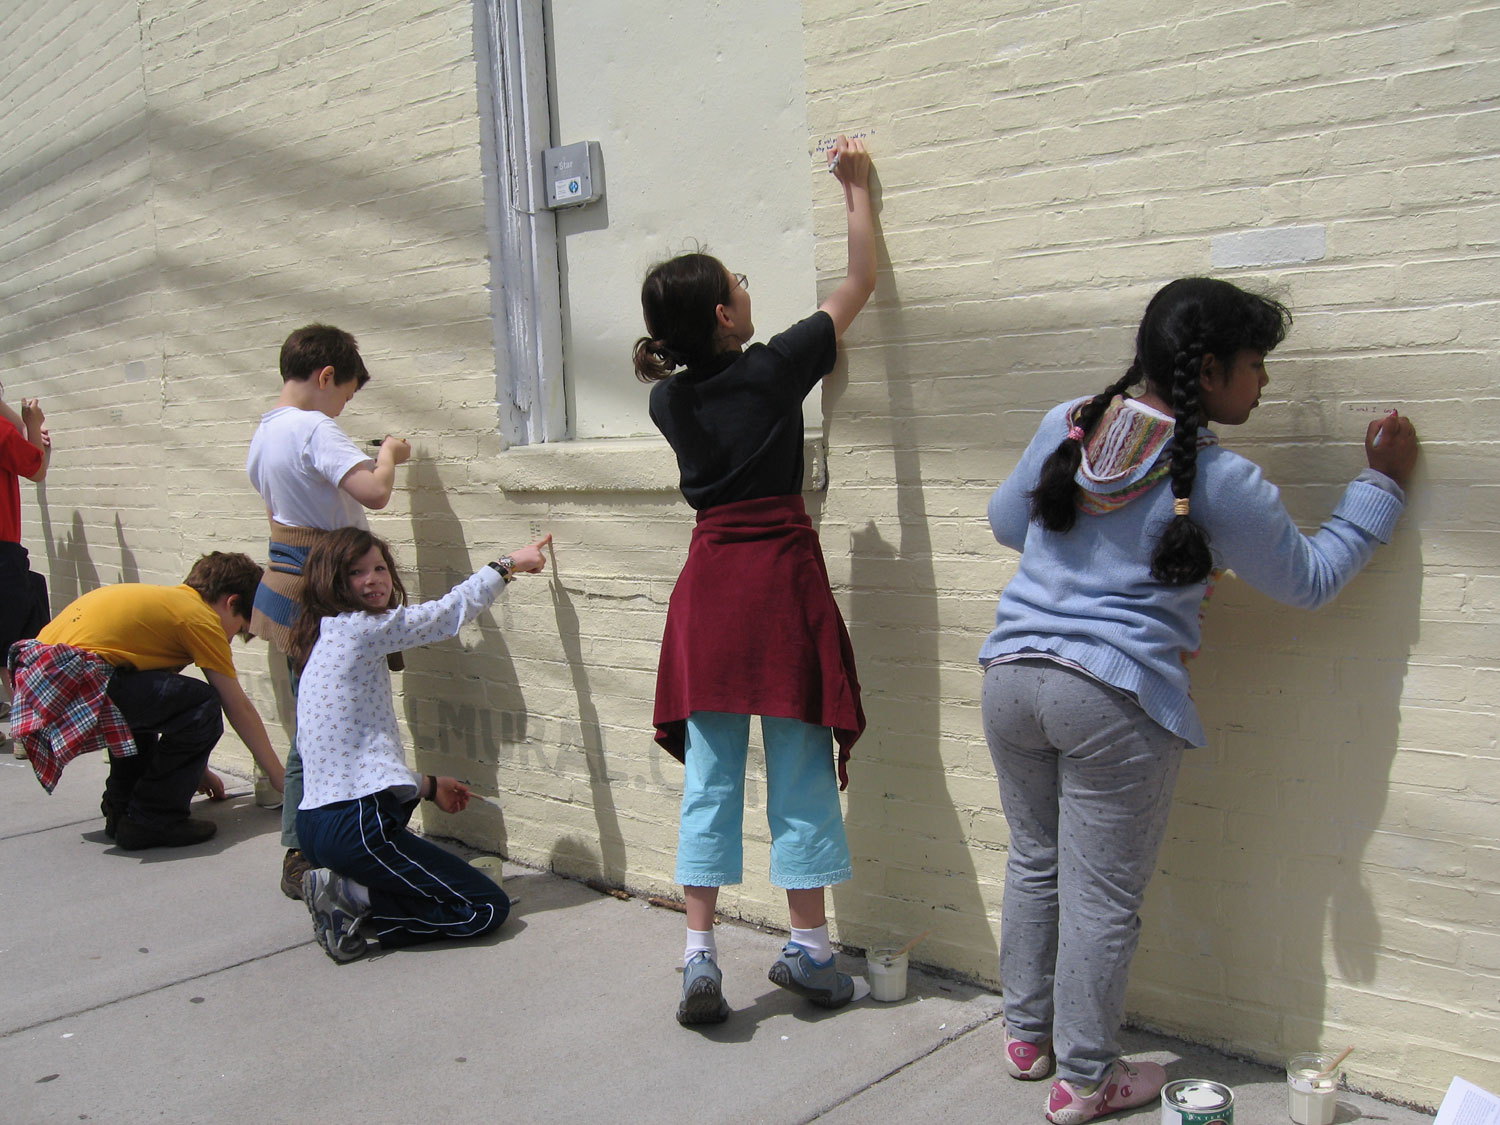 Graham & Parks Alternative Public School Class Making the Wish Wall Mural